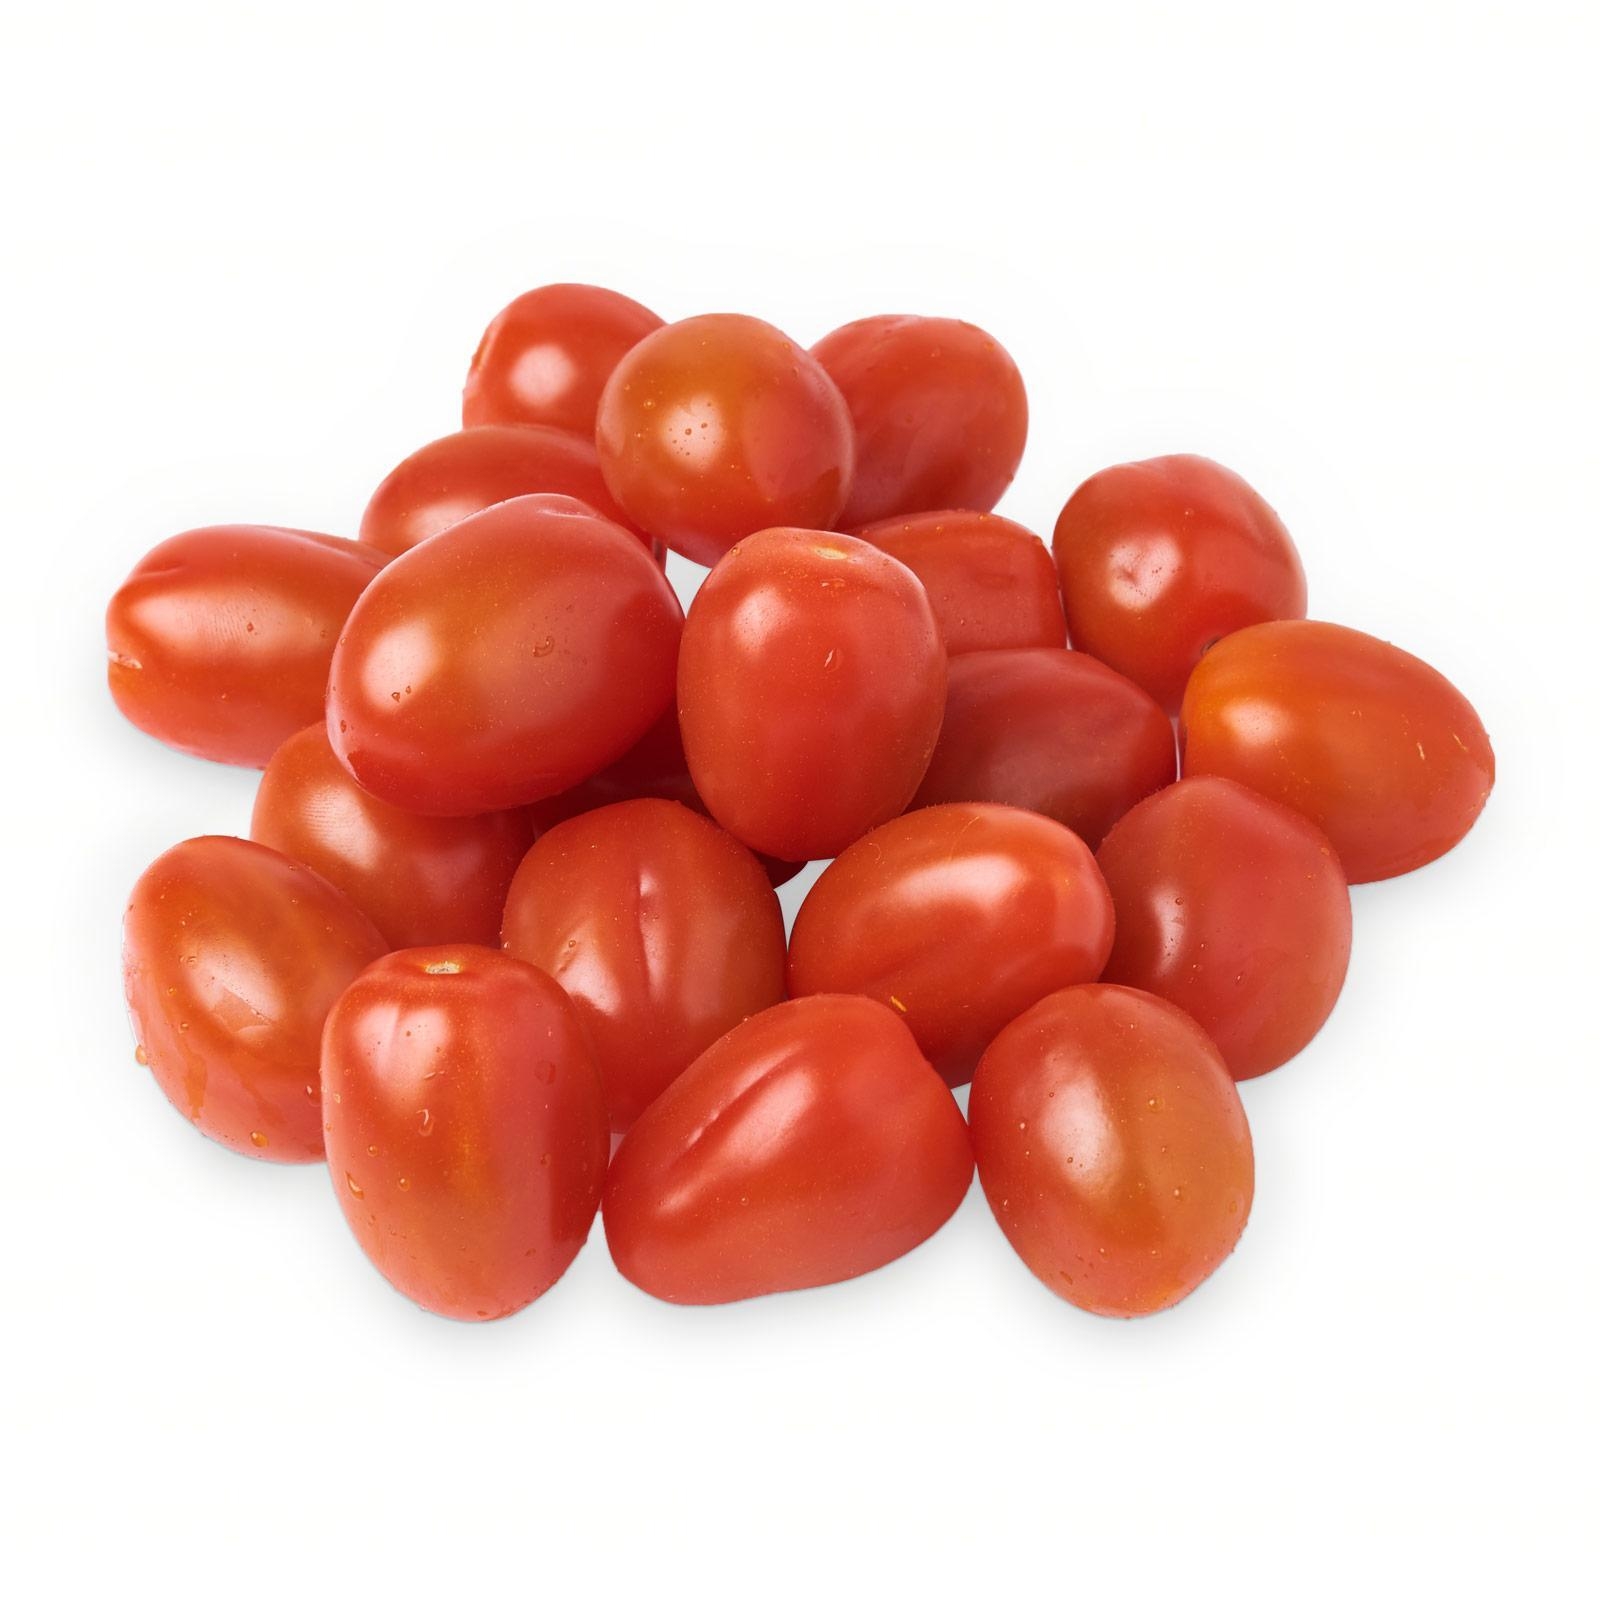 Spain Snack Red Mini Plum Tomatoes